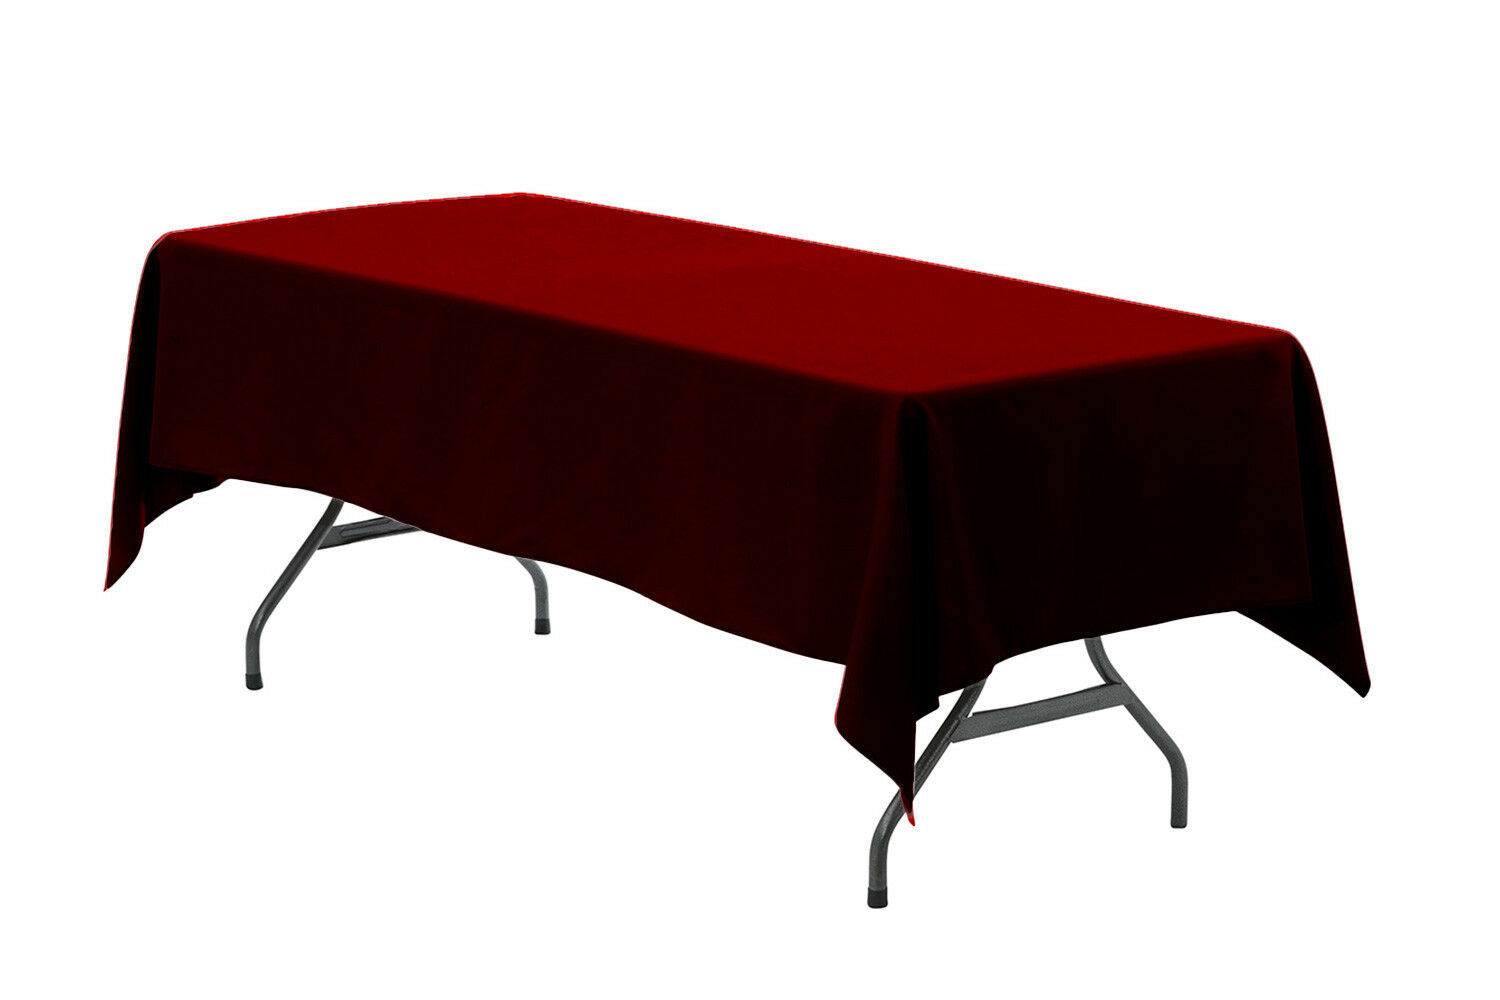 Primary image for Rectangular Premium Polyester Tablecloth Burgundy 60 x 102 inch